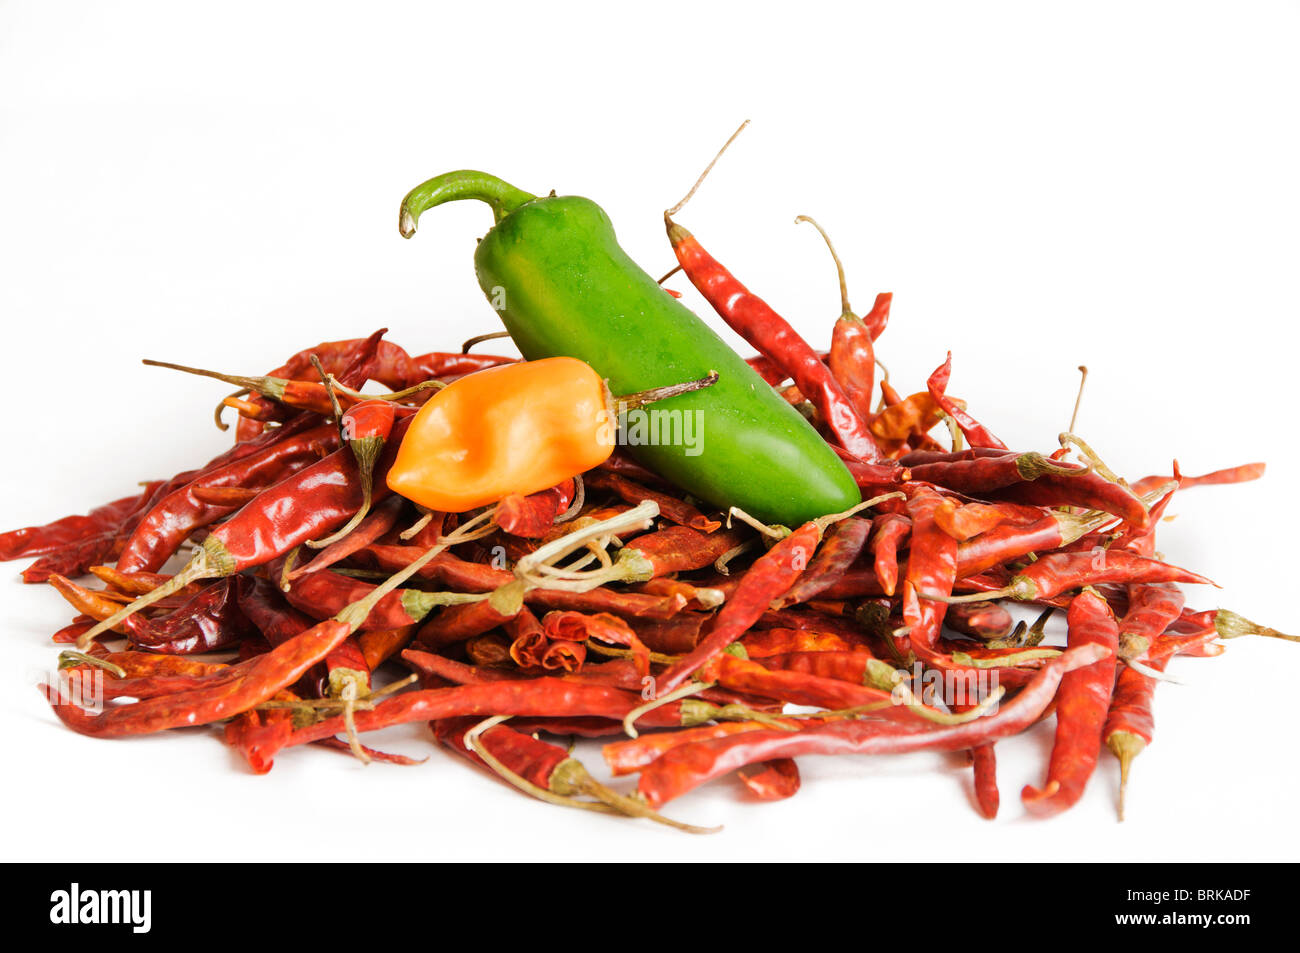 A combination of fresh and dried chilies are piled in a colorful display. - Stock Image